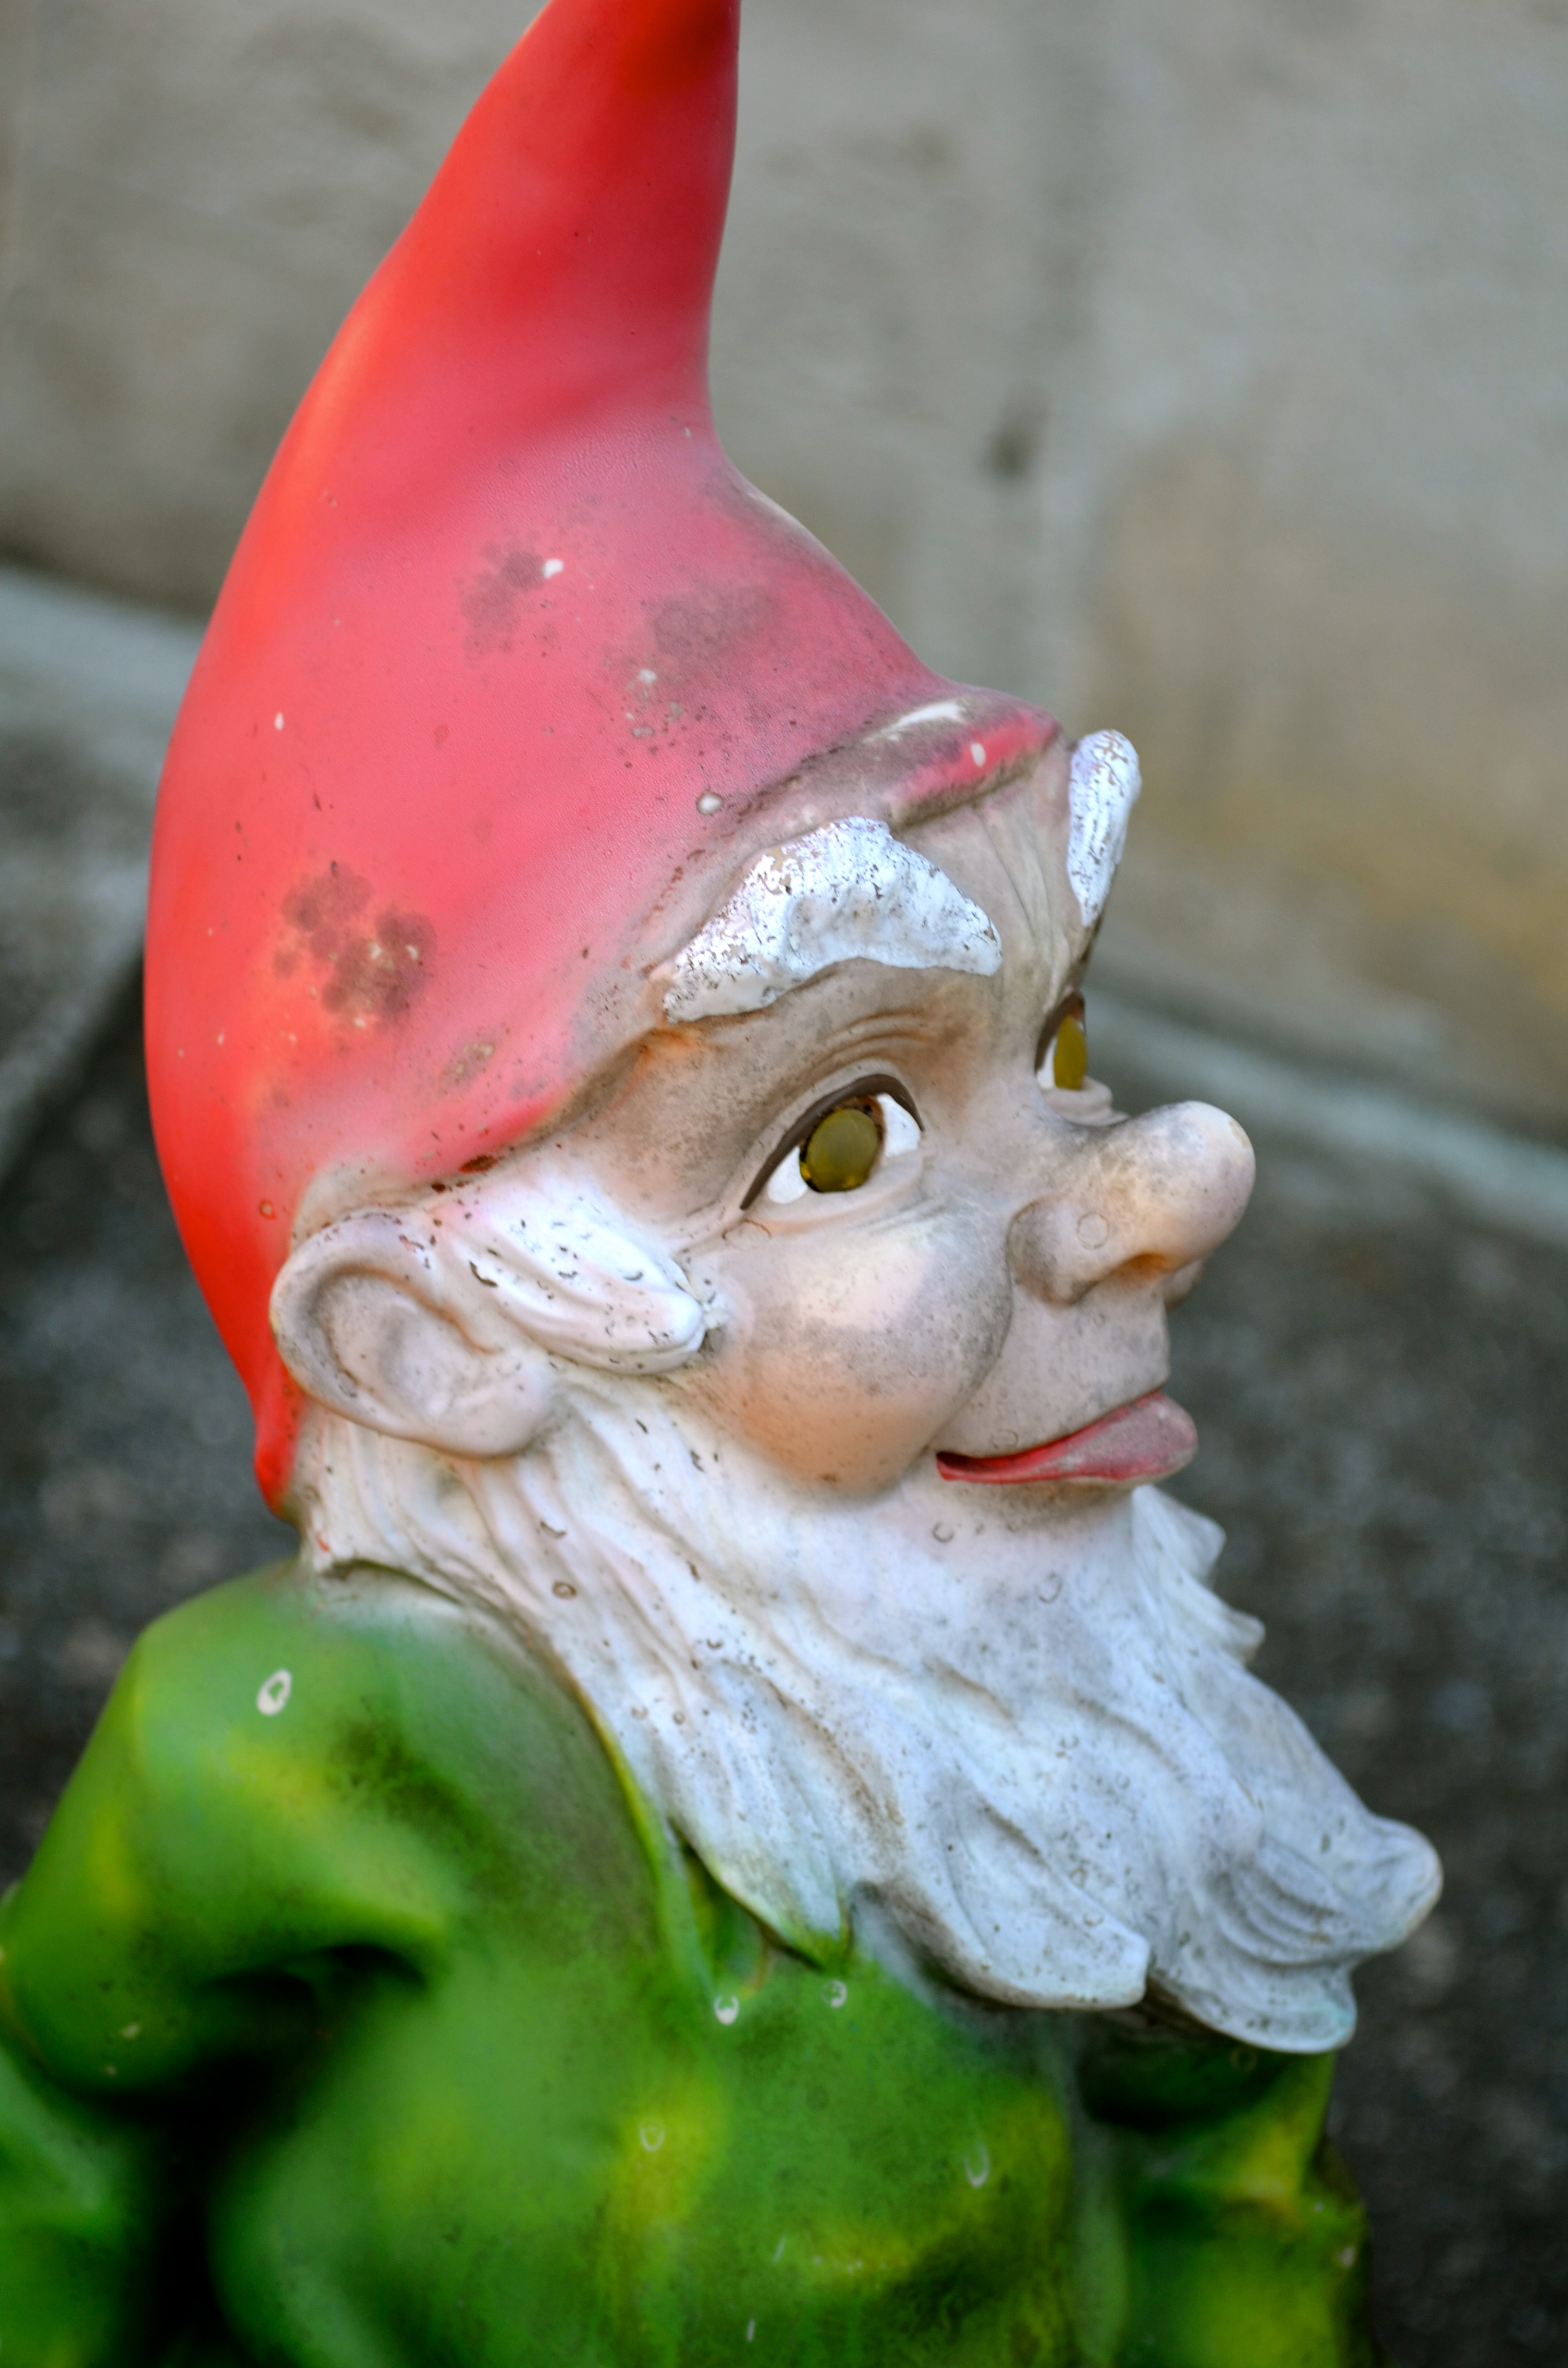 Gnome Garden: Gnome Sweet Gnome, We're Living In The Land Of Gnomes